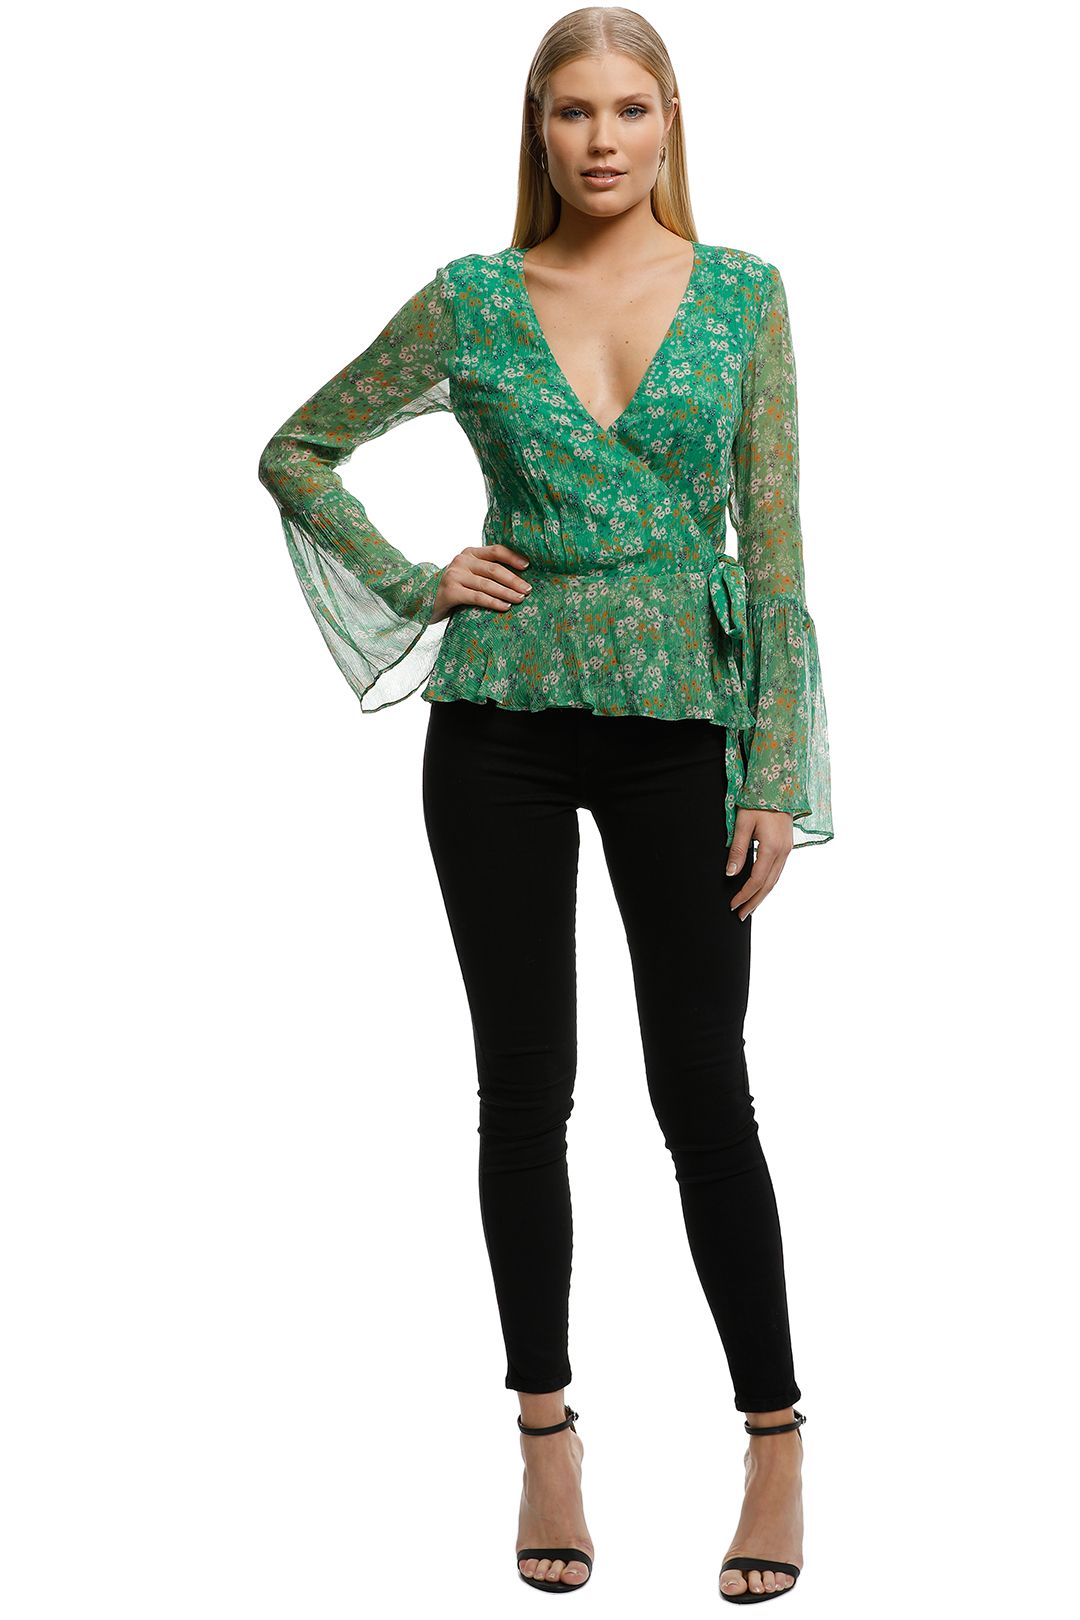 Stevie May - Jade Valentine LS Top - Floral Green - Front